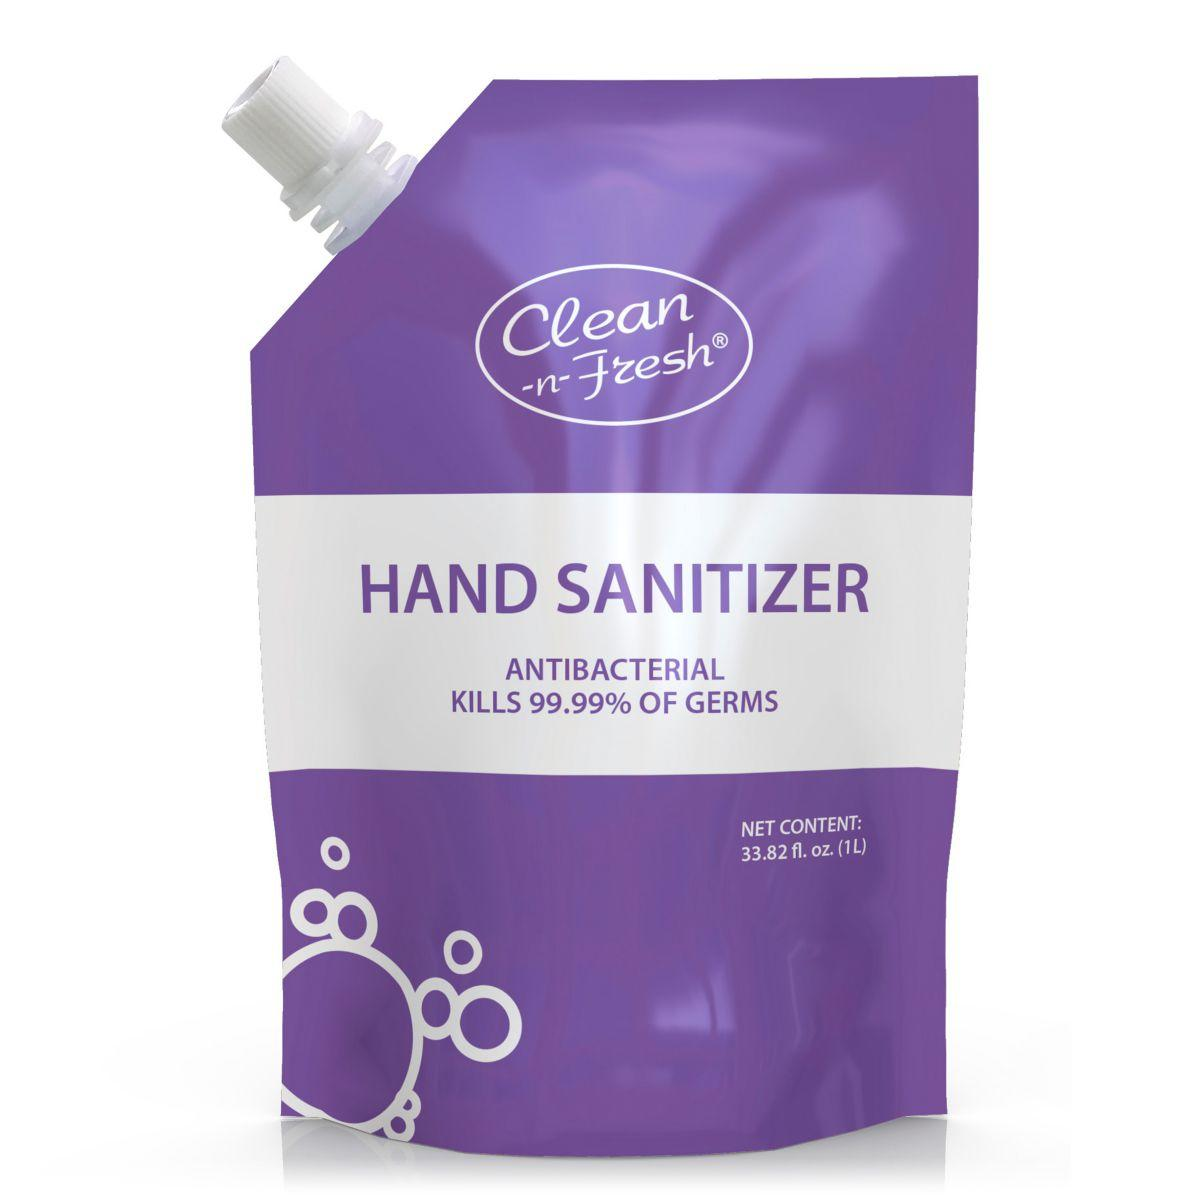 1L bath and body hand sanitizer